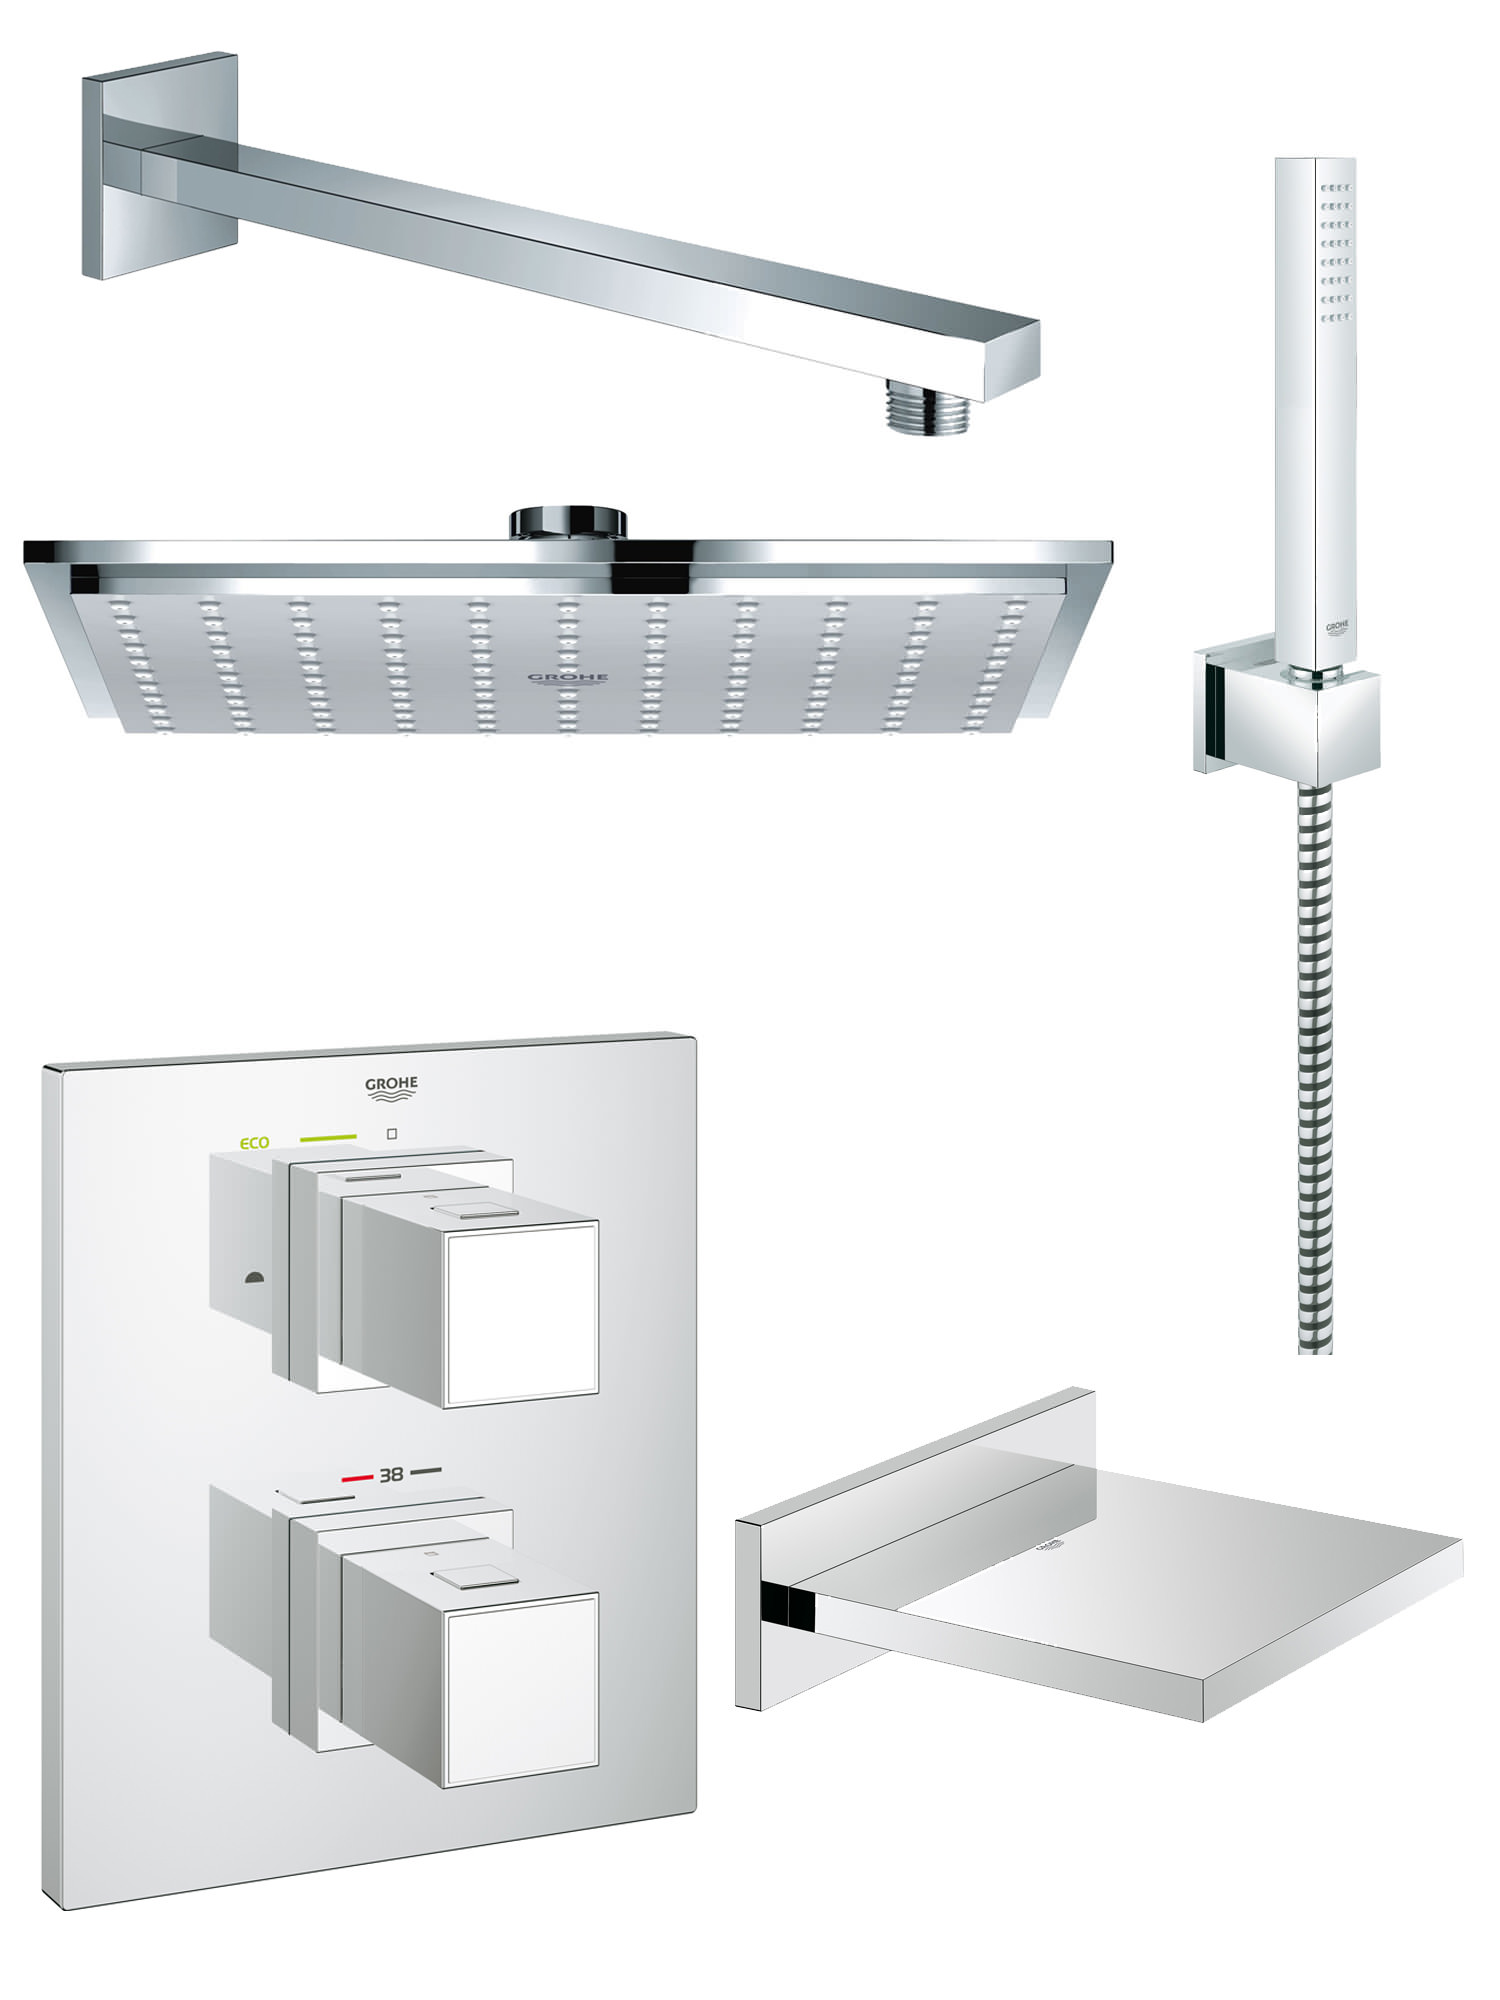 grohe grohtherm cube bath and shower shower solution pack 5. Black Bedroom Furniture Sets. Home Design Ideas